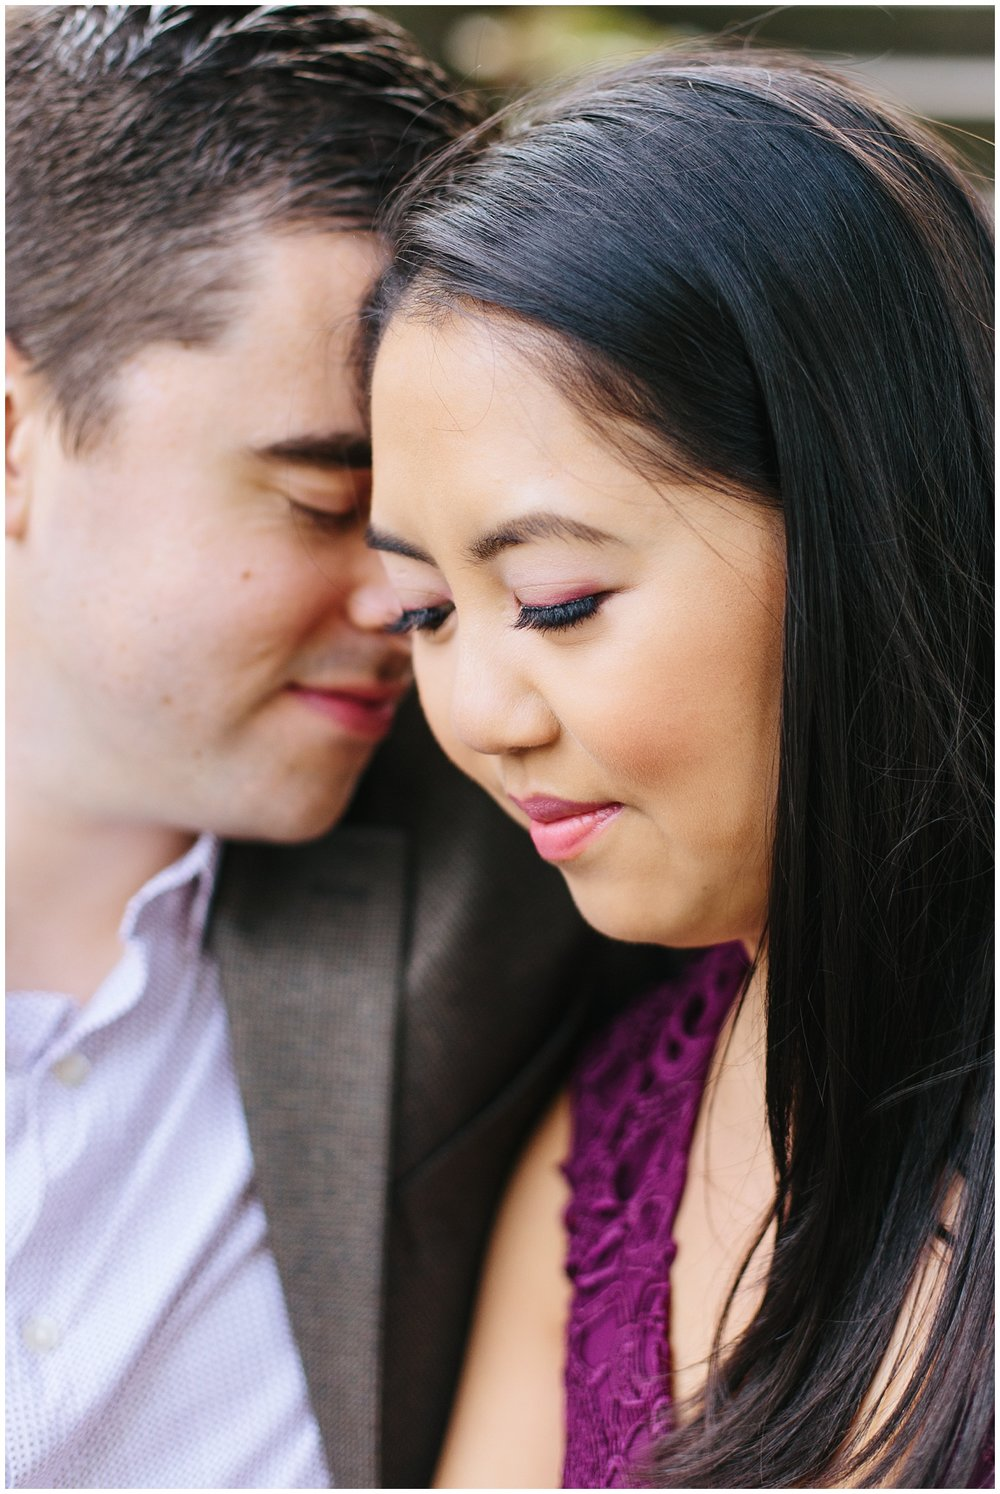 oakland_schenley_park_engagement_session_0028.jpg